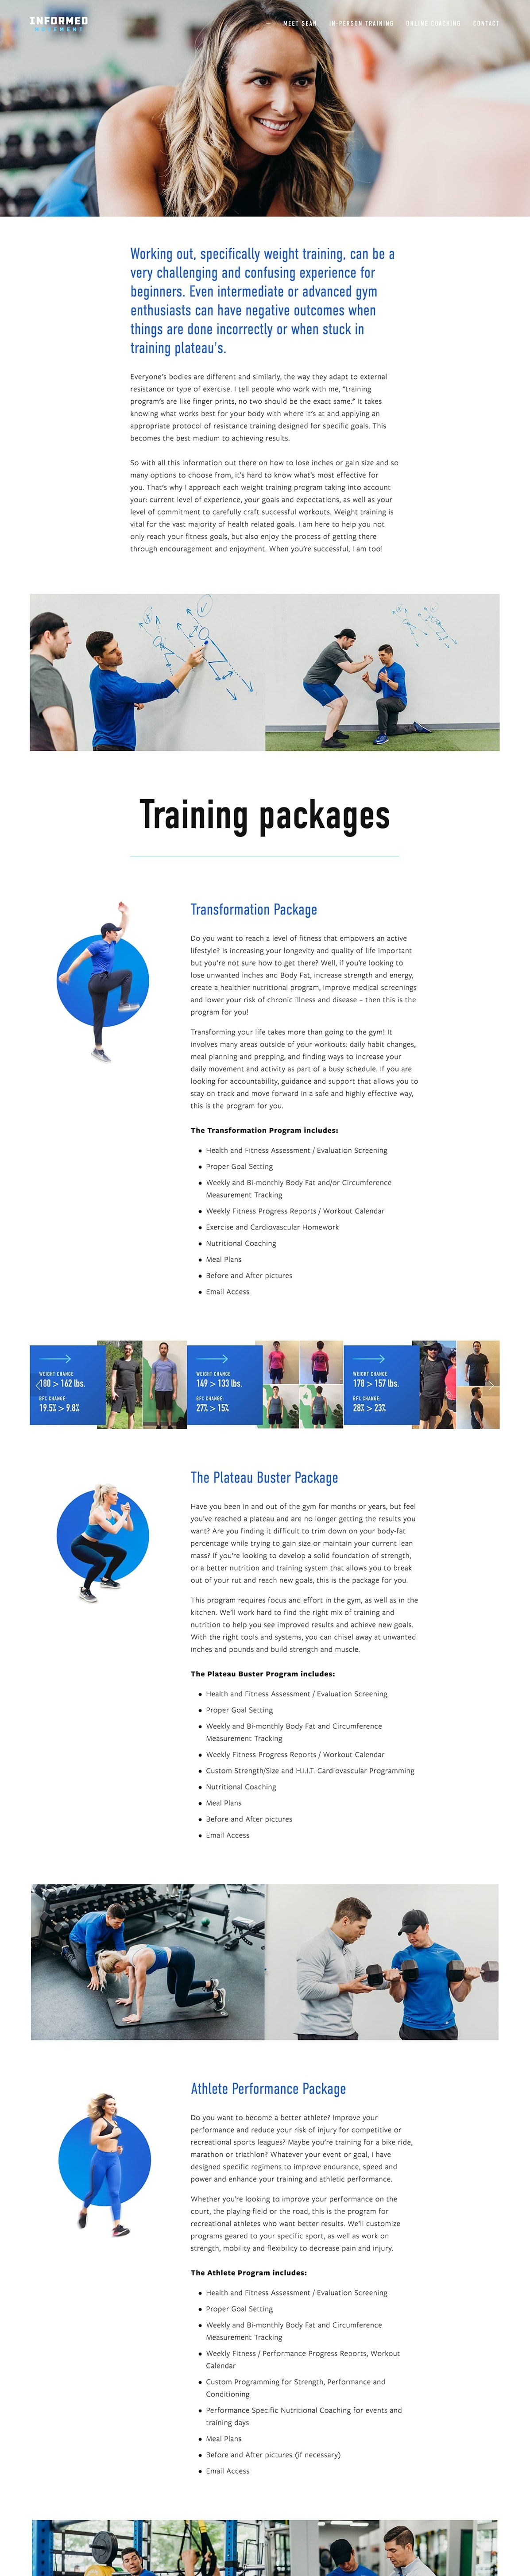 Informed movement website packages page